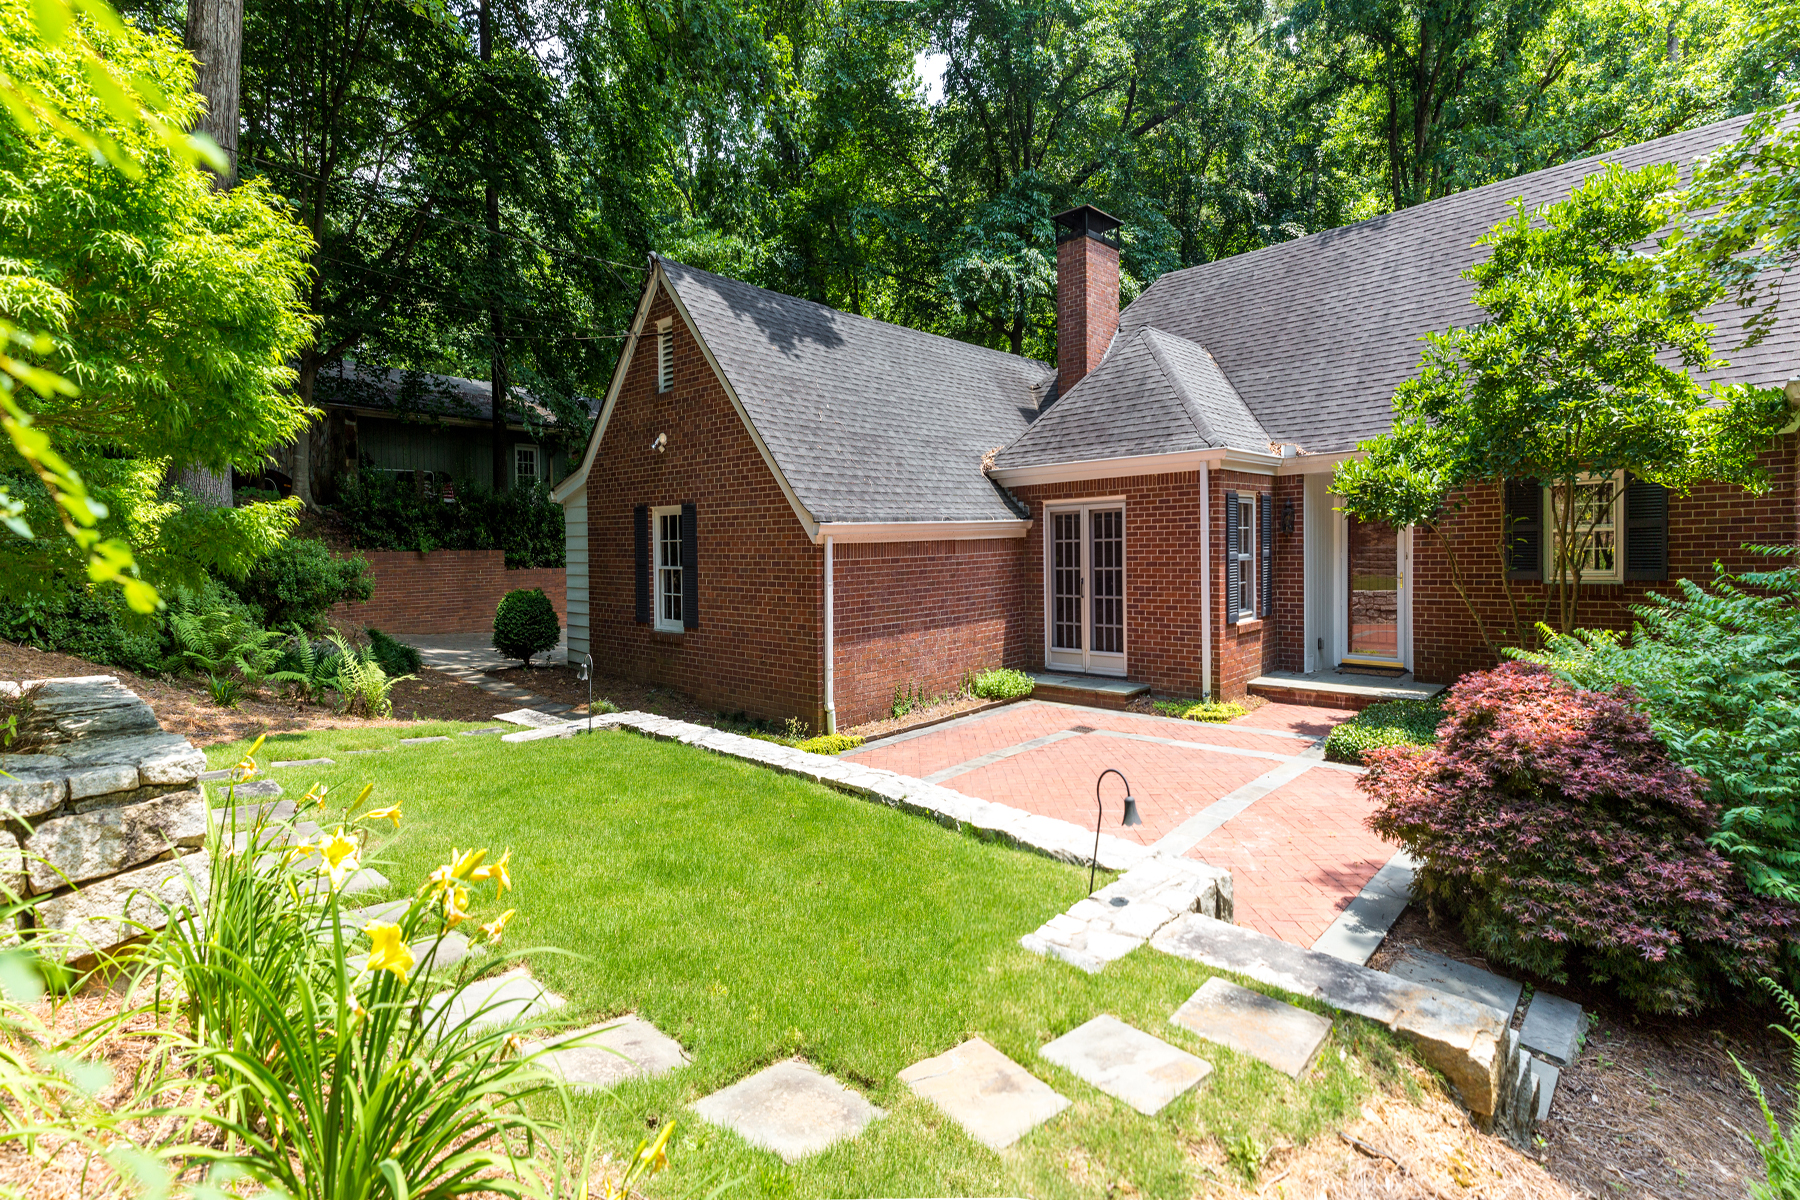 Single Family Home for Sale at Amazing Value For Space In Brick Ranch On Finished Basement 1339 Paces Forest Drive NW Atlanta, Georgia, 30327 United States